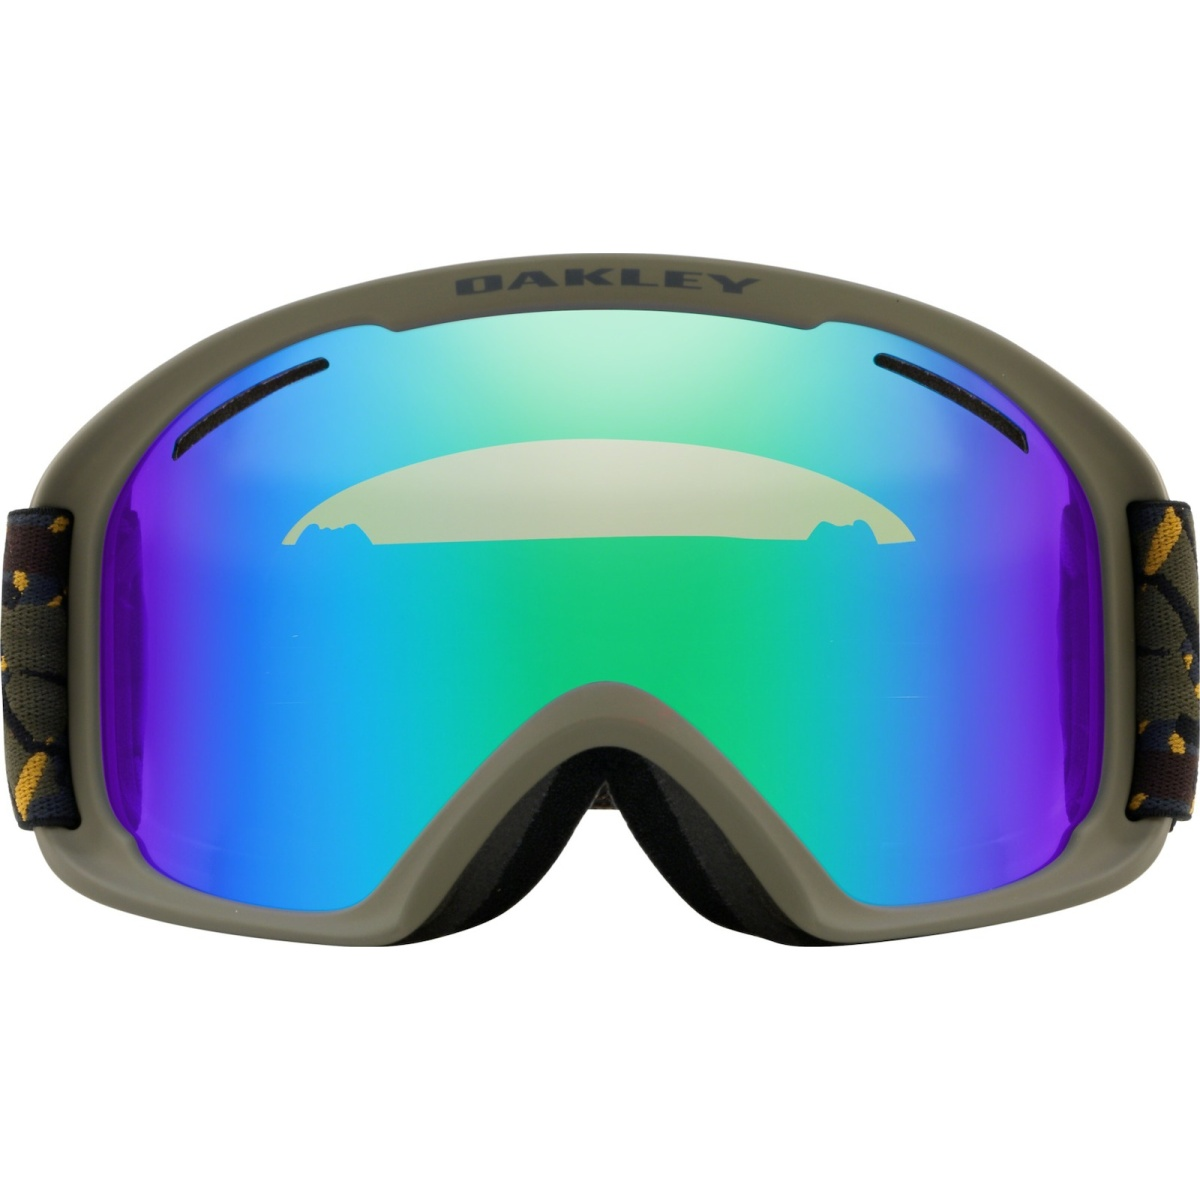 037ff4466f8 Oakley O Frame 2.0 XL Skibril. OO7045 41. Product afbeelding · Product  afbeelding